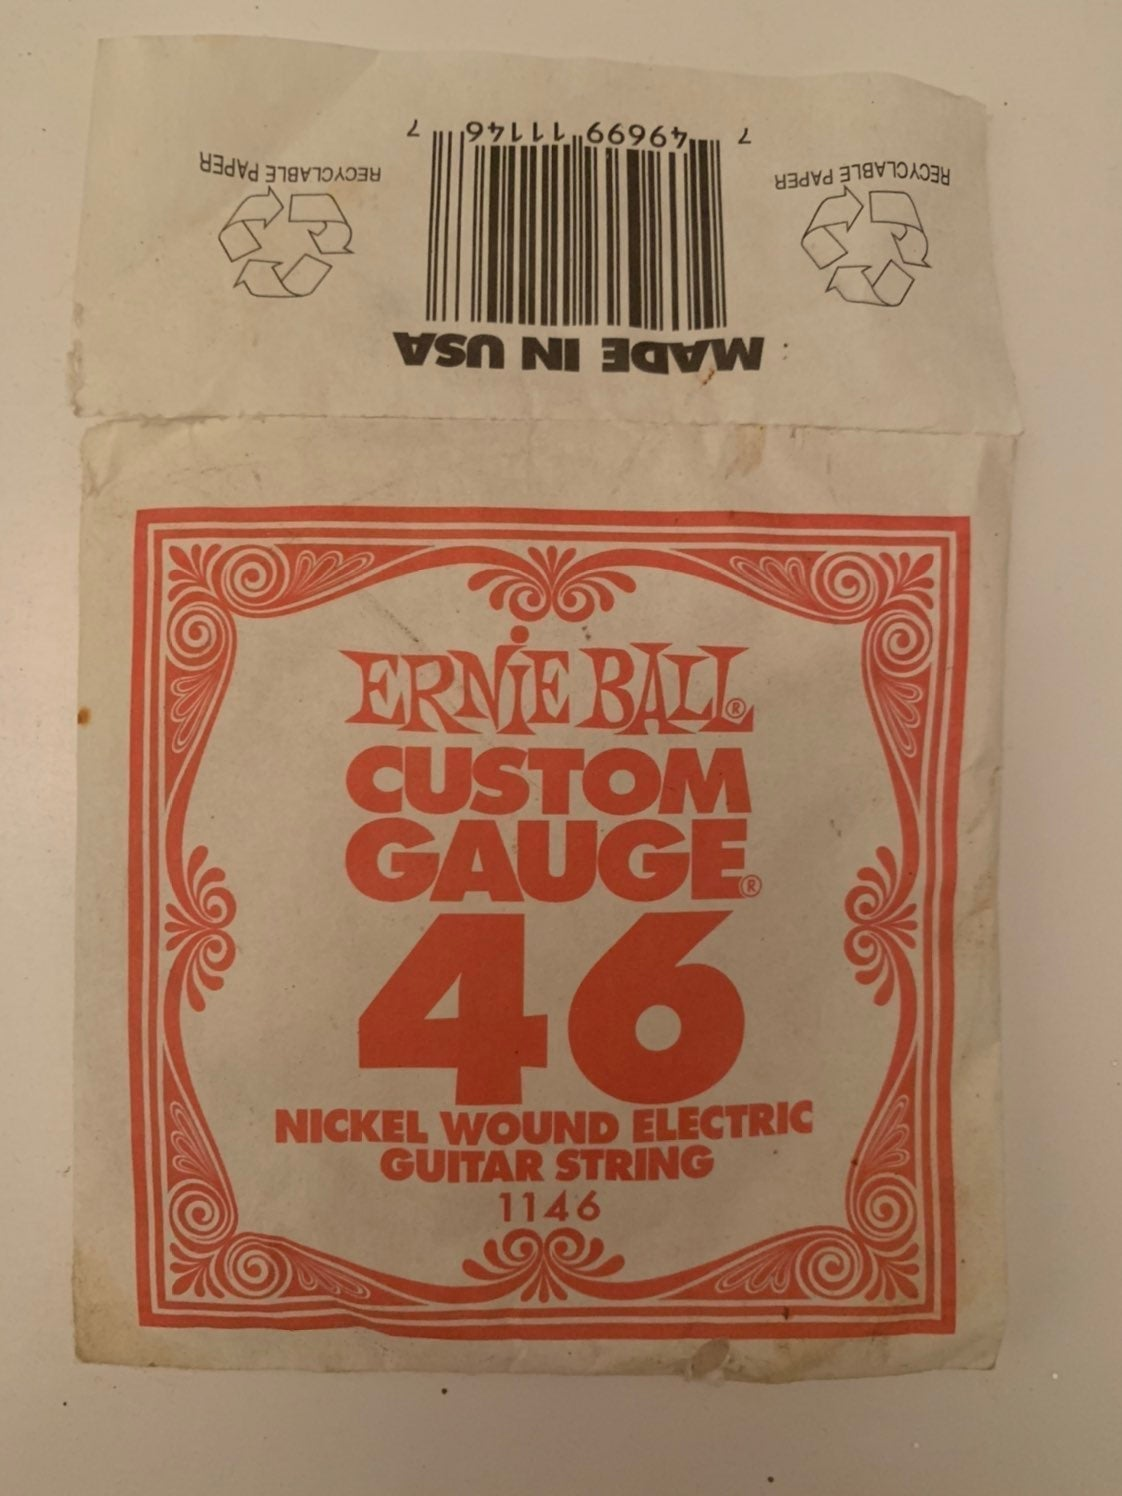 Ernie Ball Guitar String